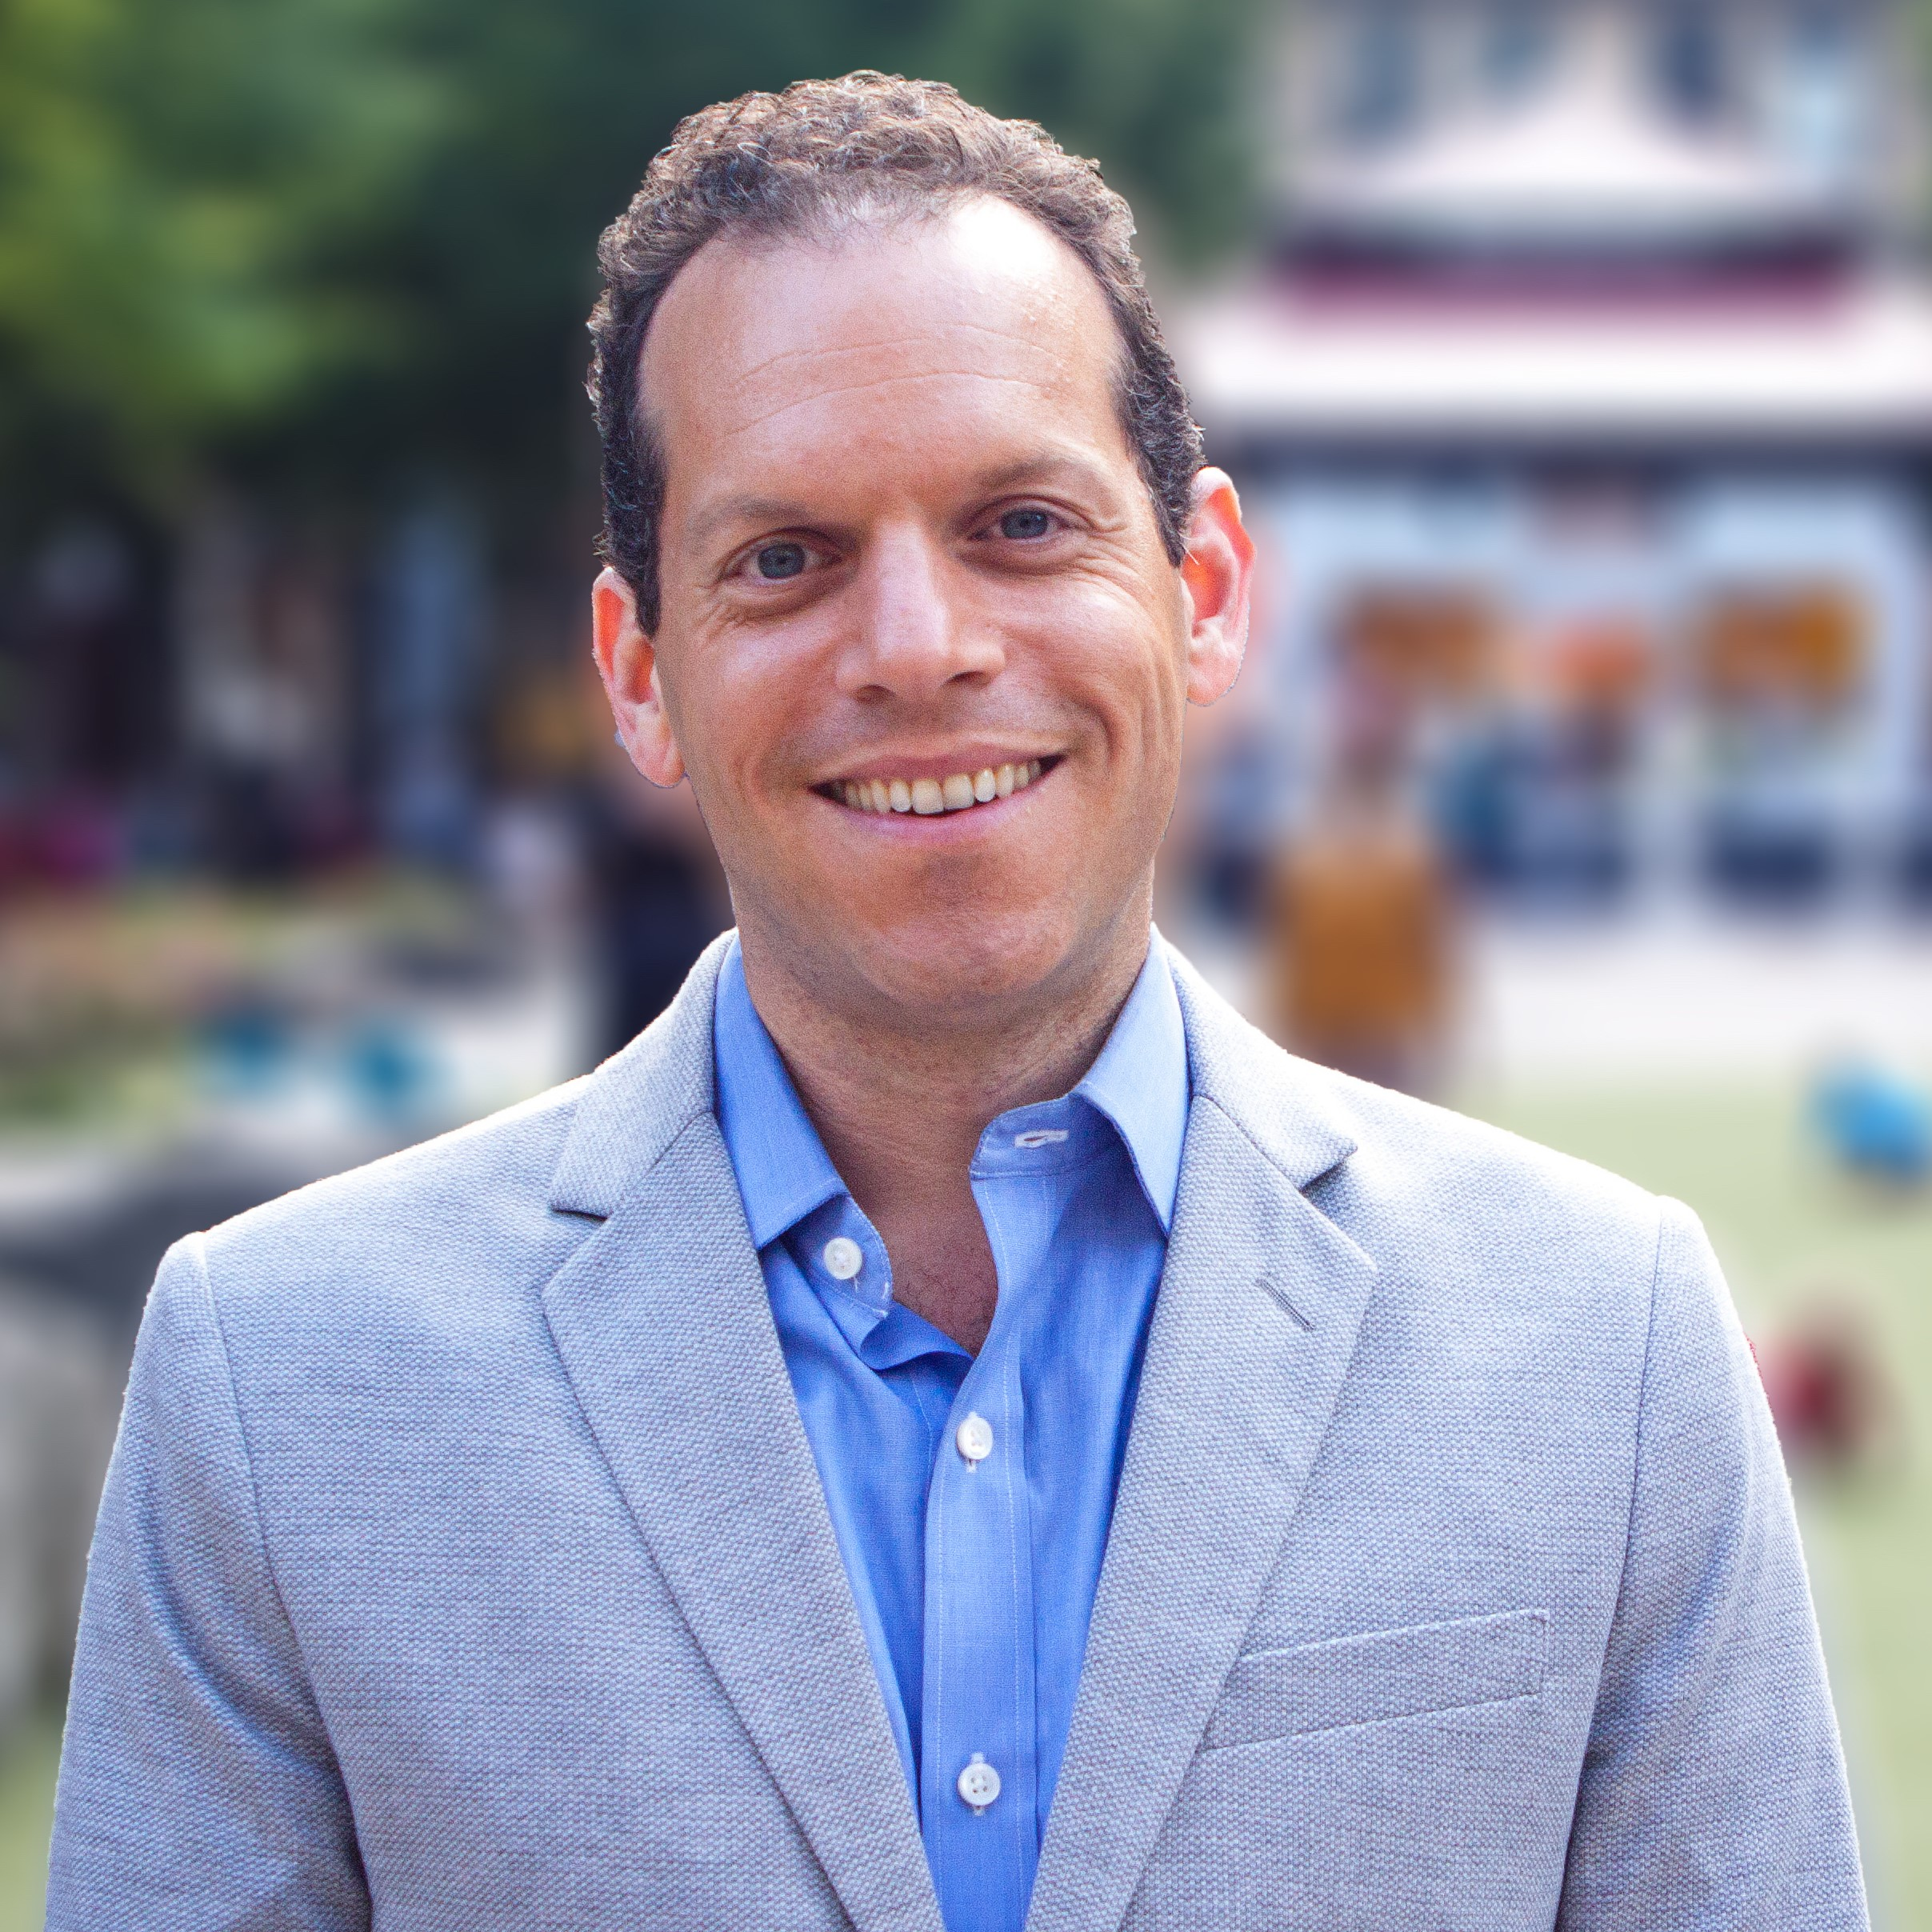 Kulanu Shabbat Service at Temple Emanuel, featuring guest speaker Evan Glass, At-Large Member of the Montgomery County Council